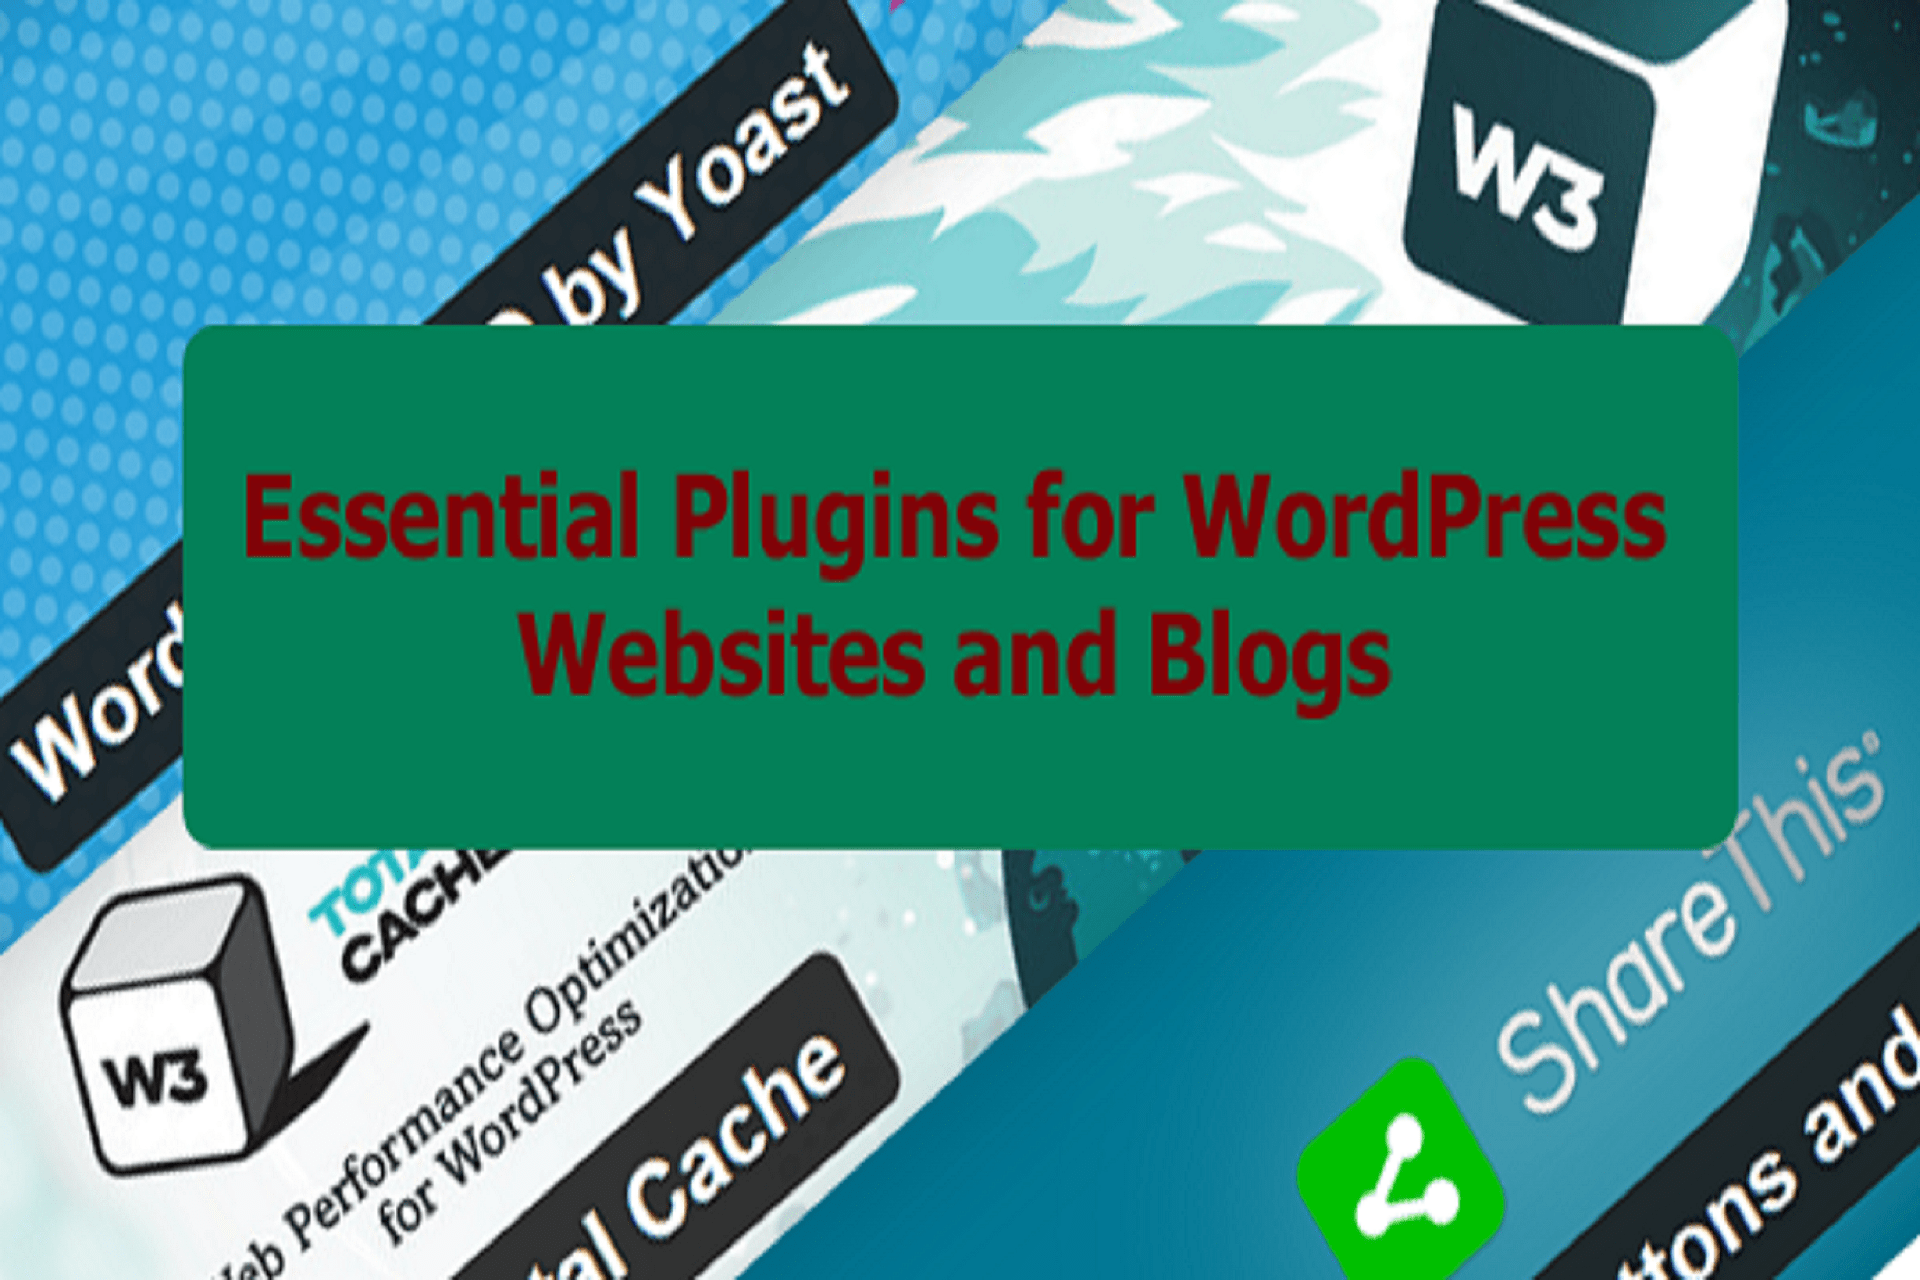 Few Essential Plugins for WordPress Websites and Blogs